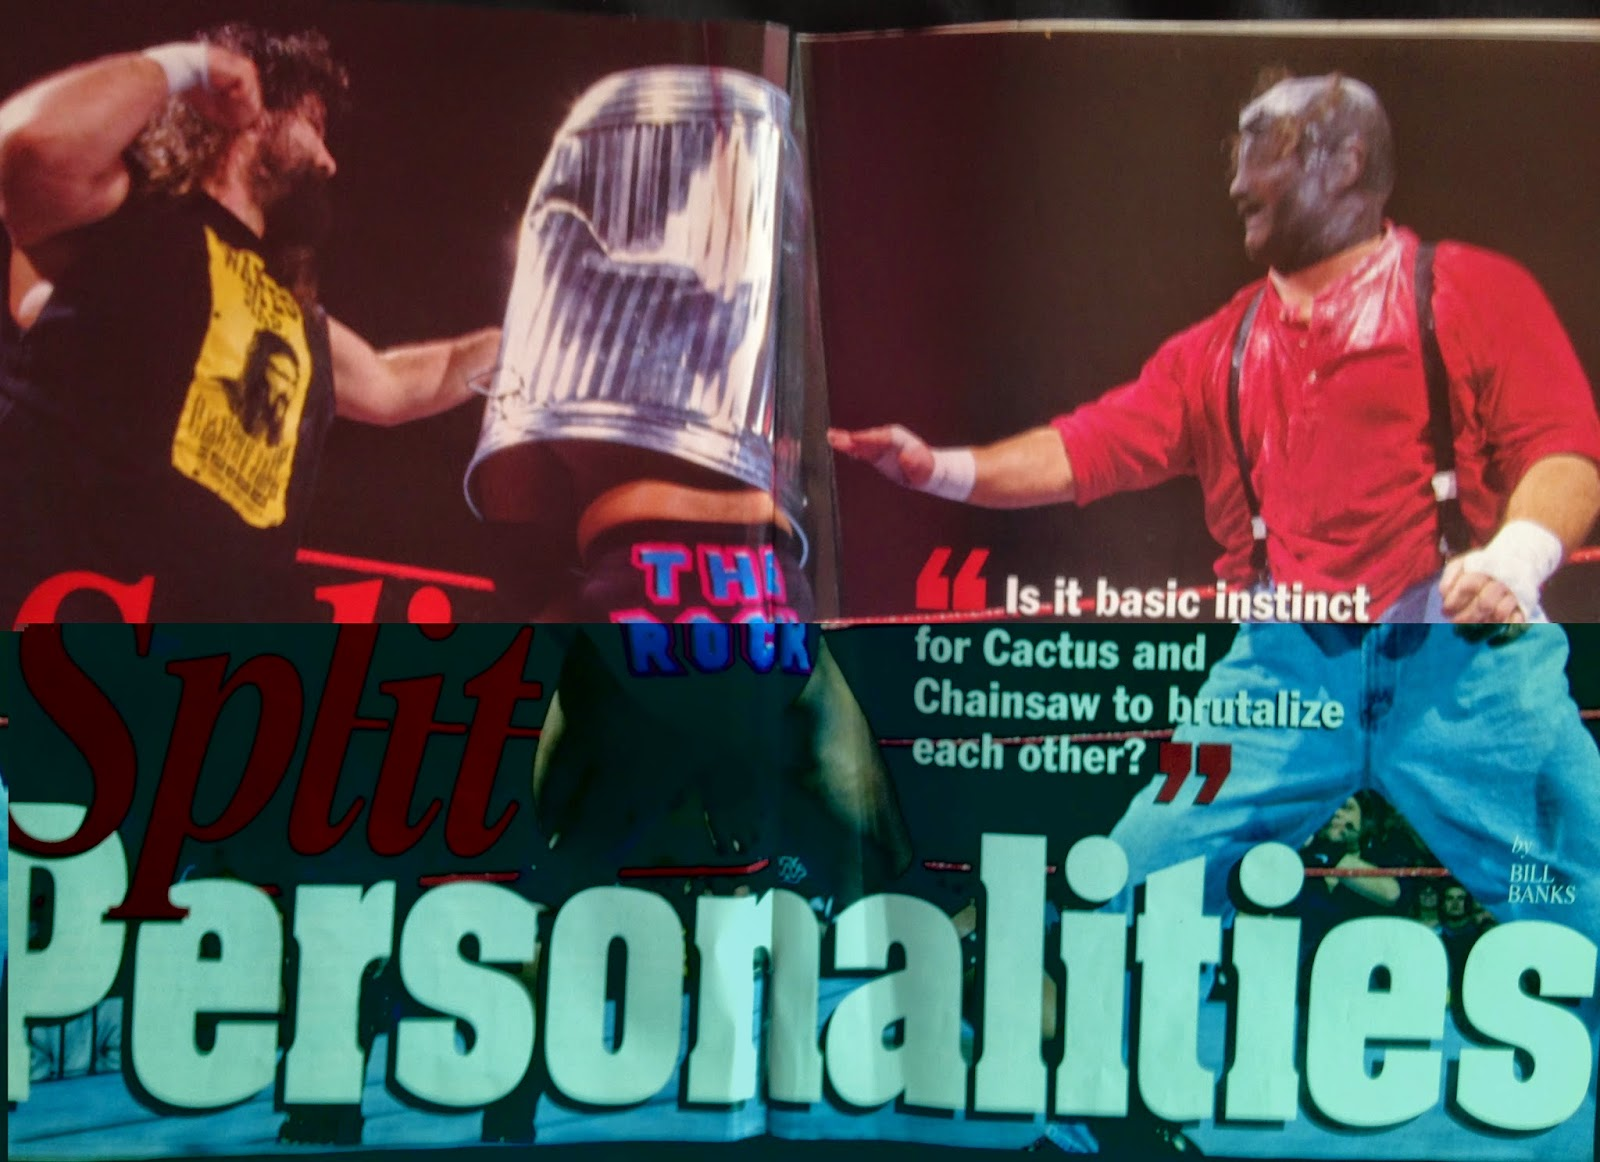 WWE - WWF Raw Magazine - April 1998 -  Cactus Jack and Chainsaw Charlie